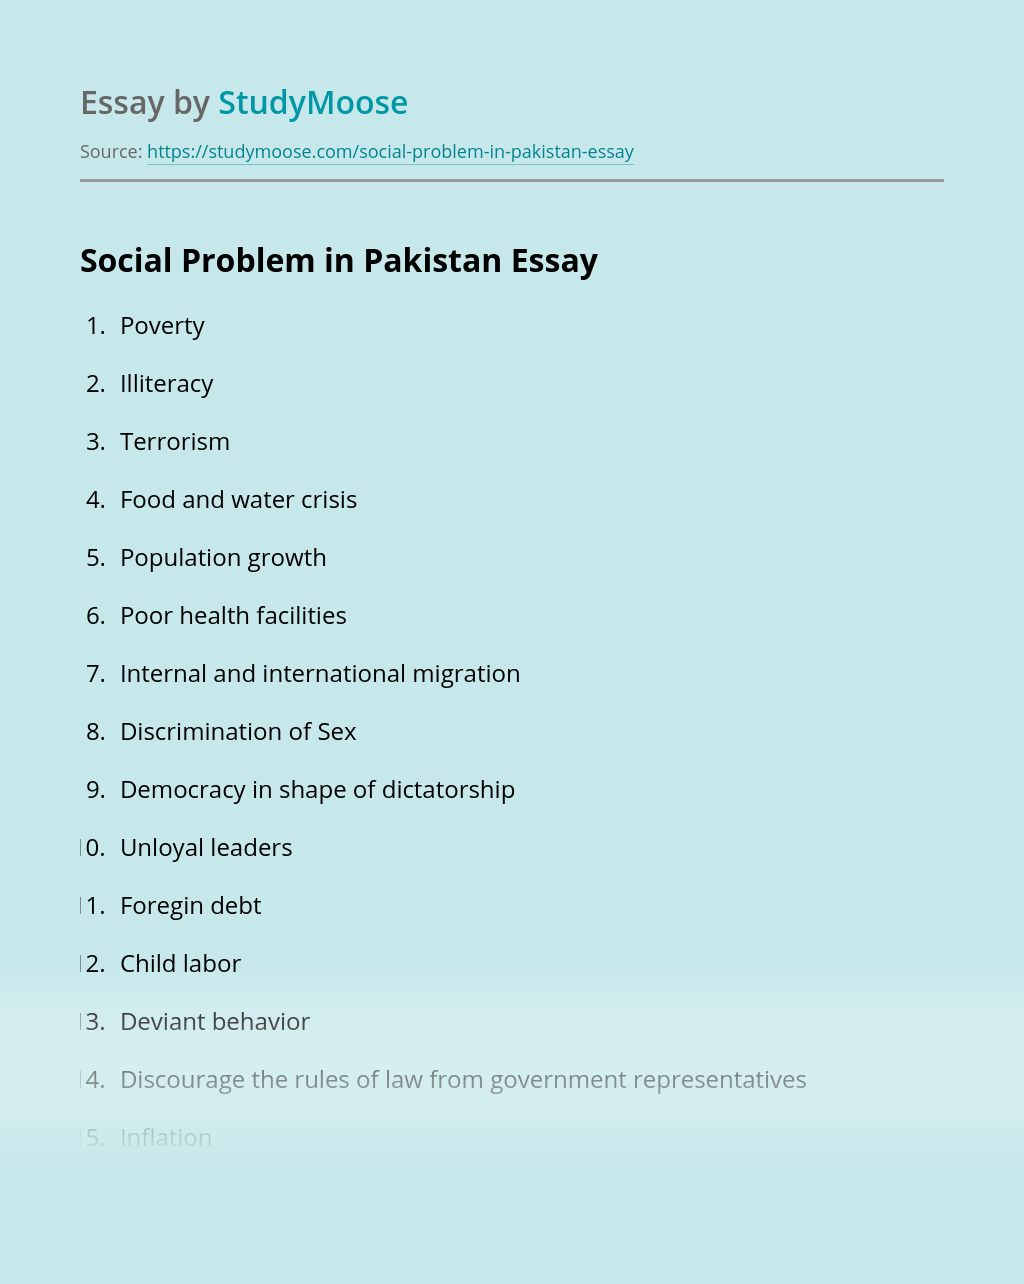 Social Problem in Pakistan